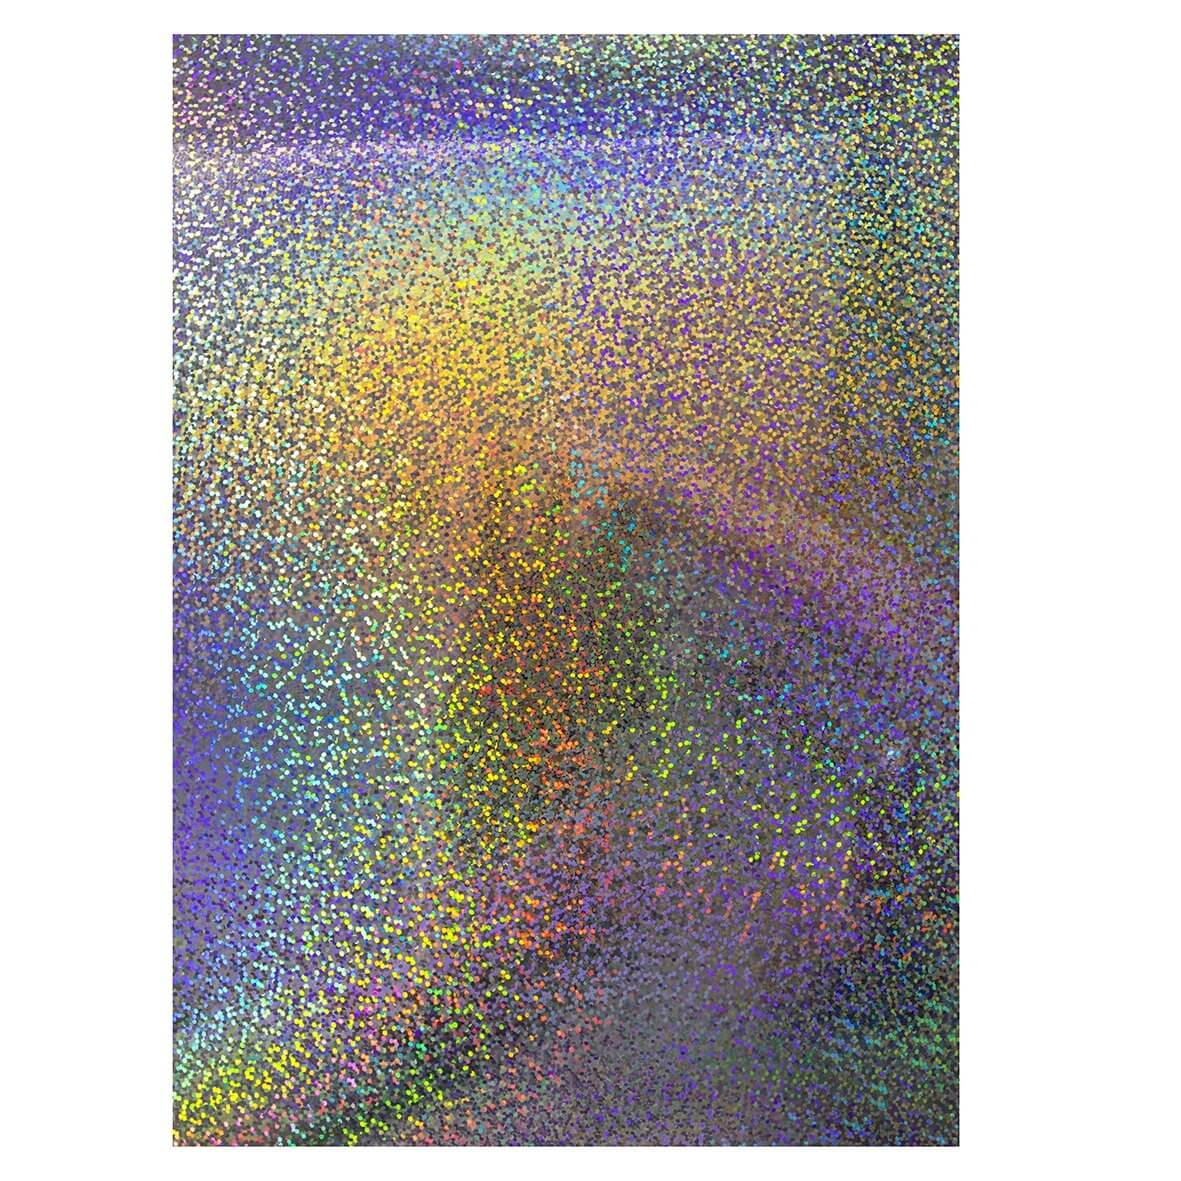 Mirri Confetti Holographic A4 Card | Wow Vow